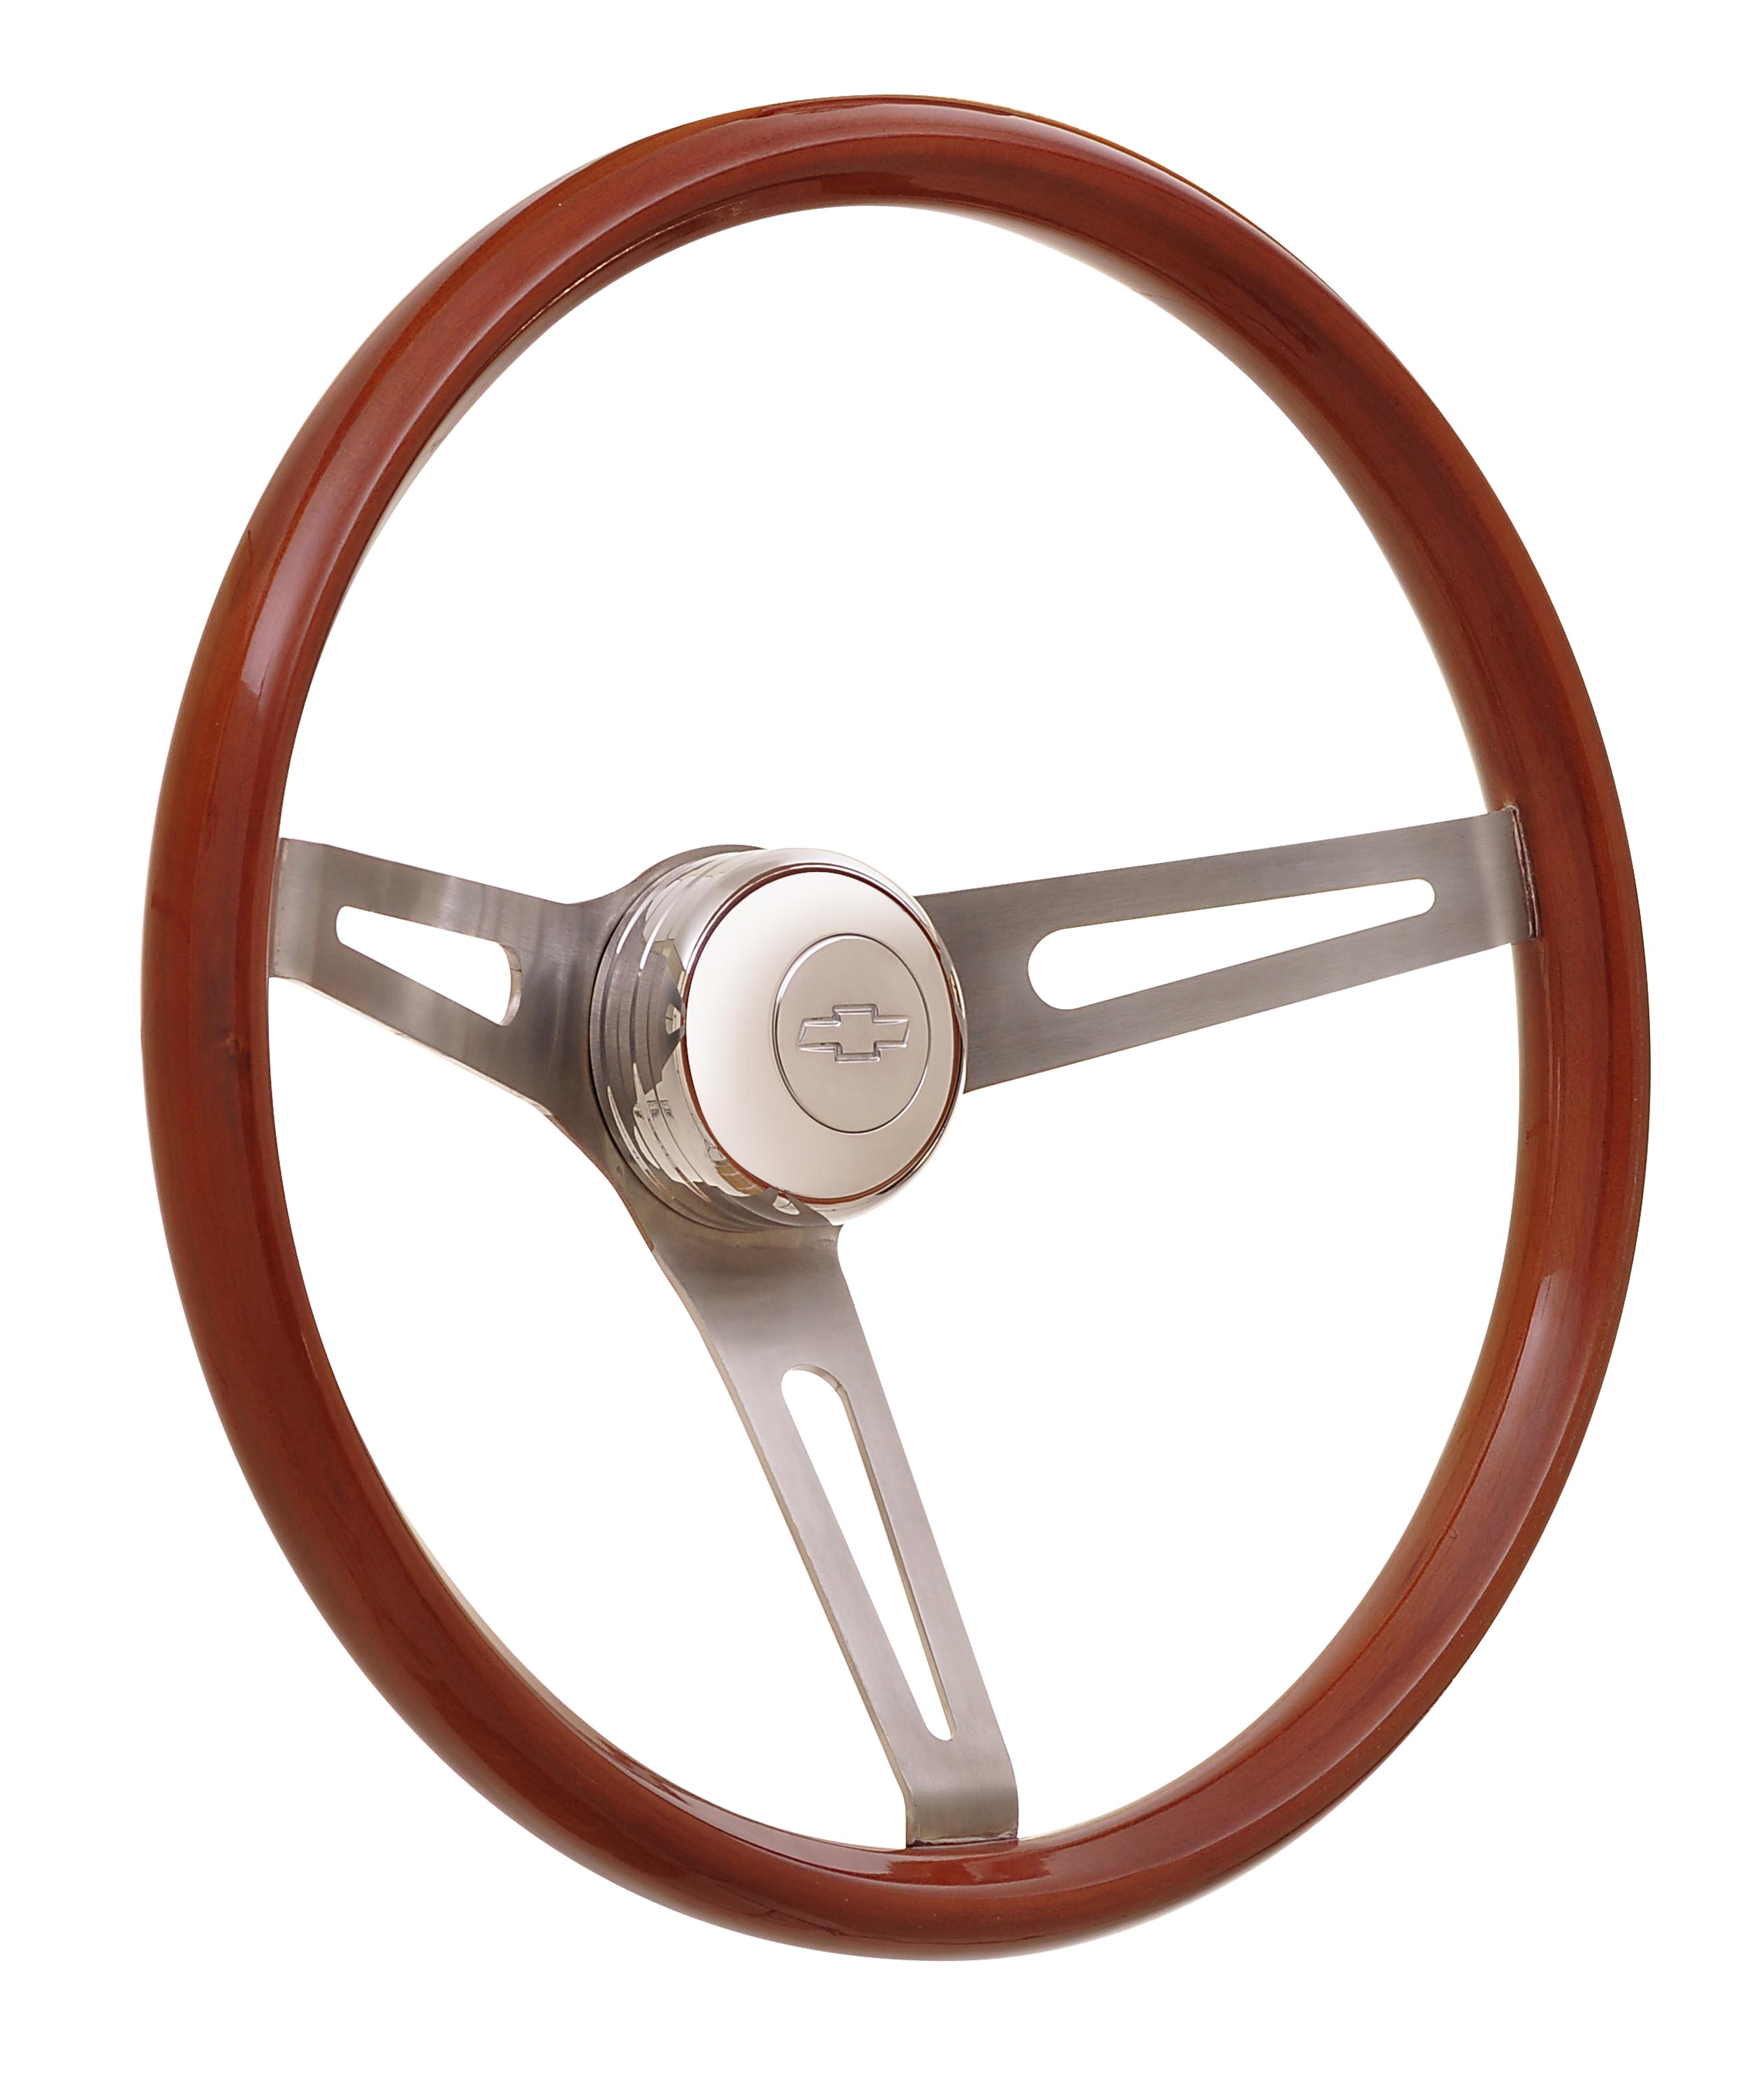 36-5457 GT Performance Steering Wheel 15 Inch Diameter